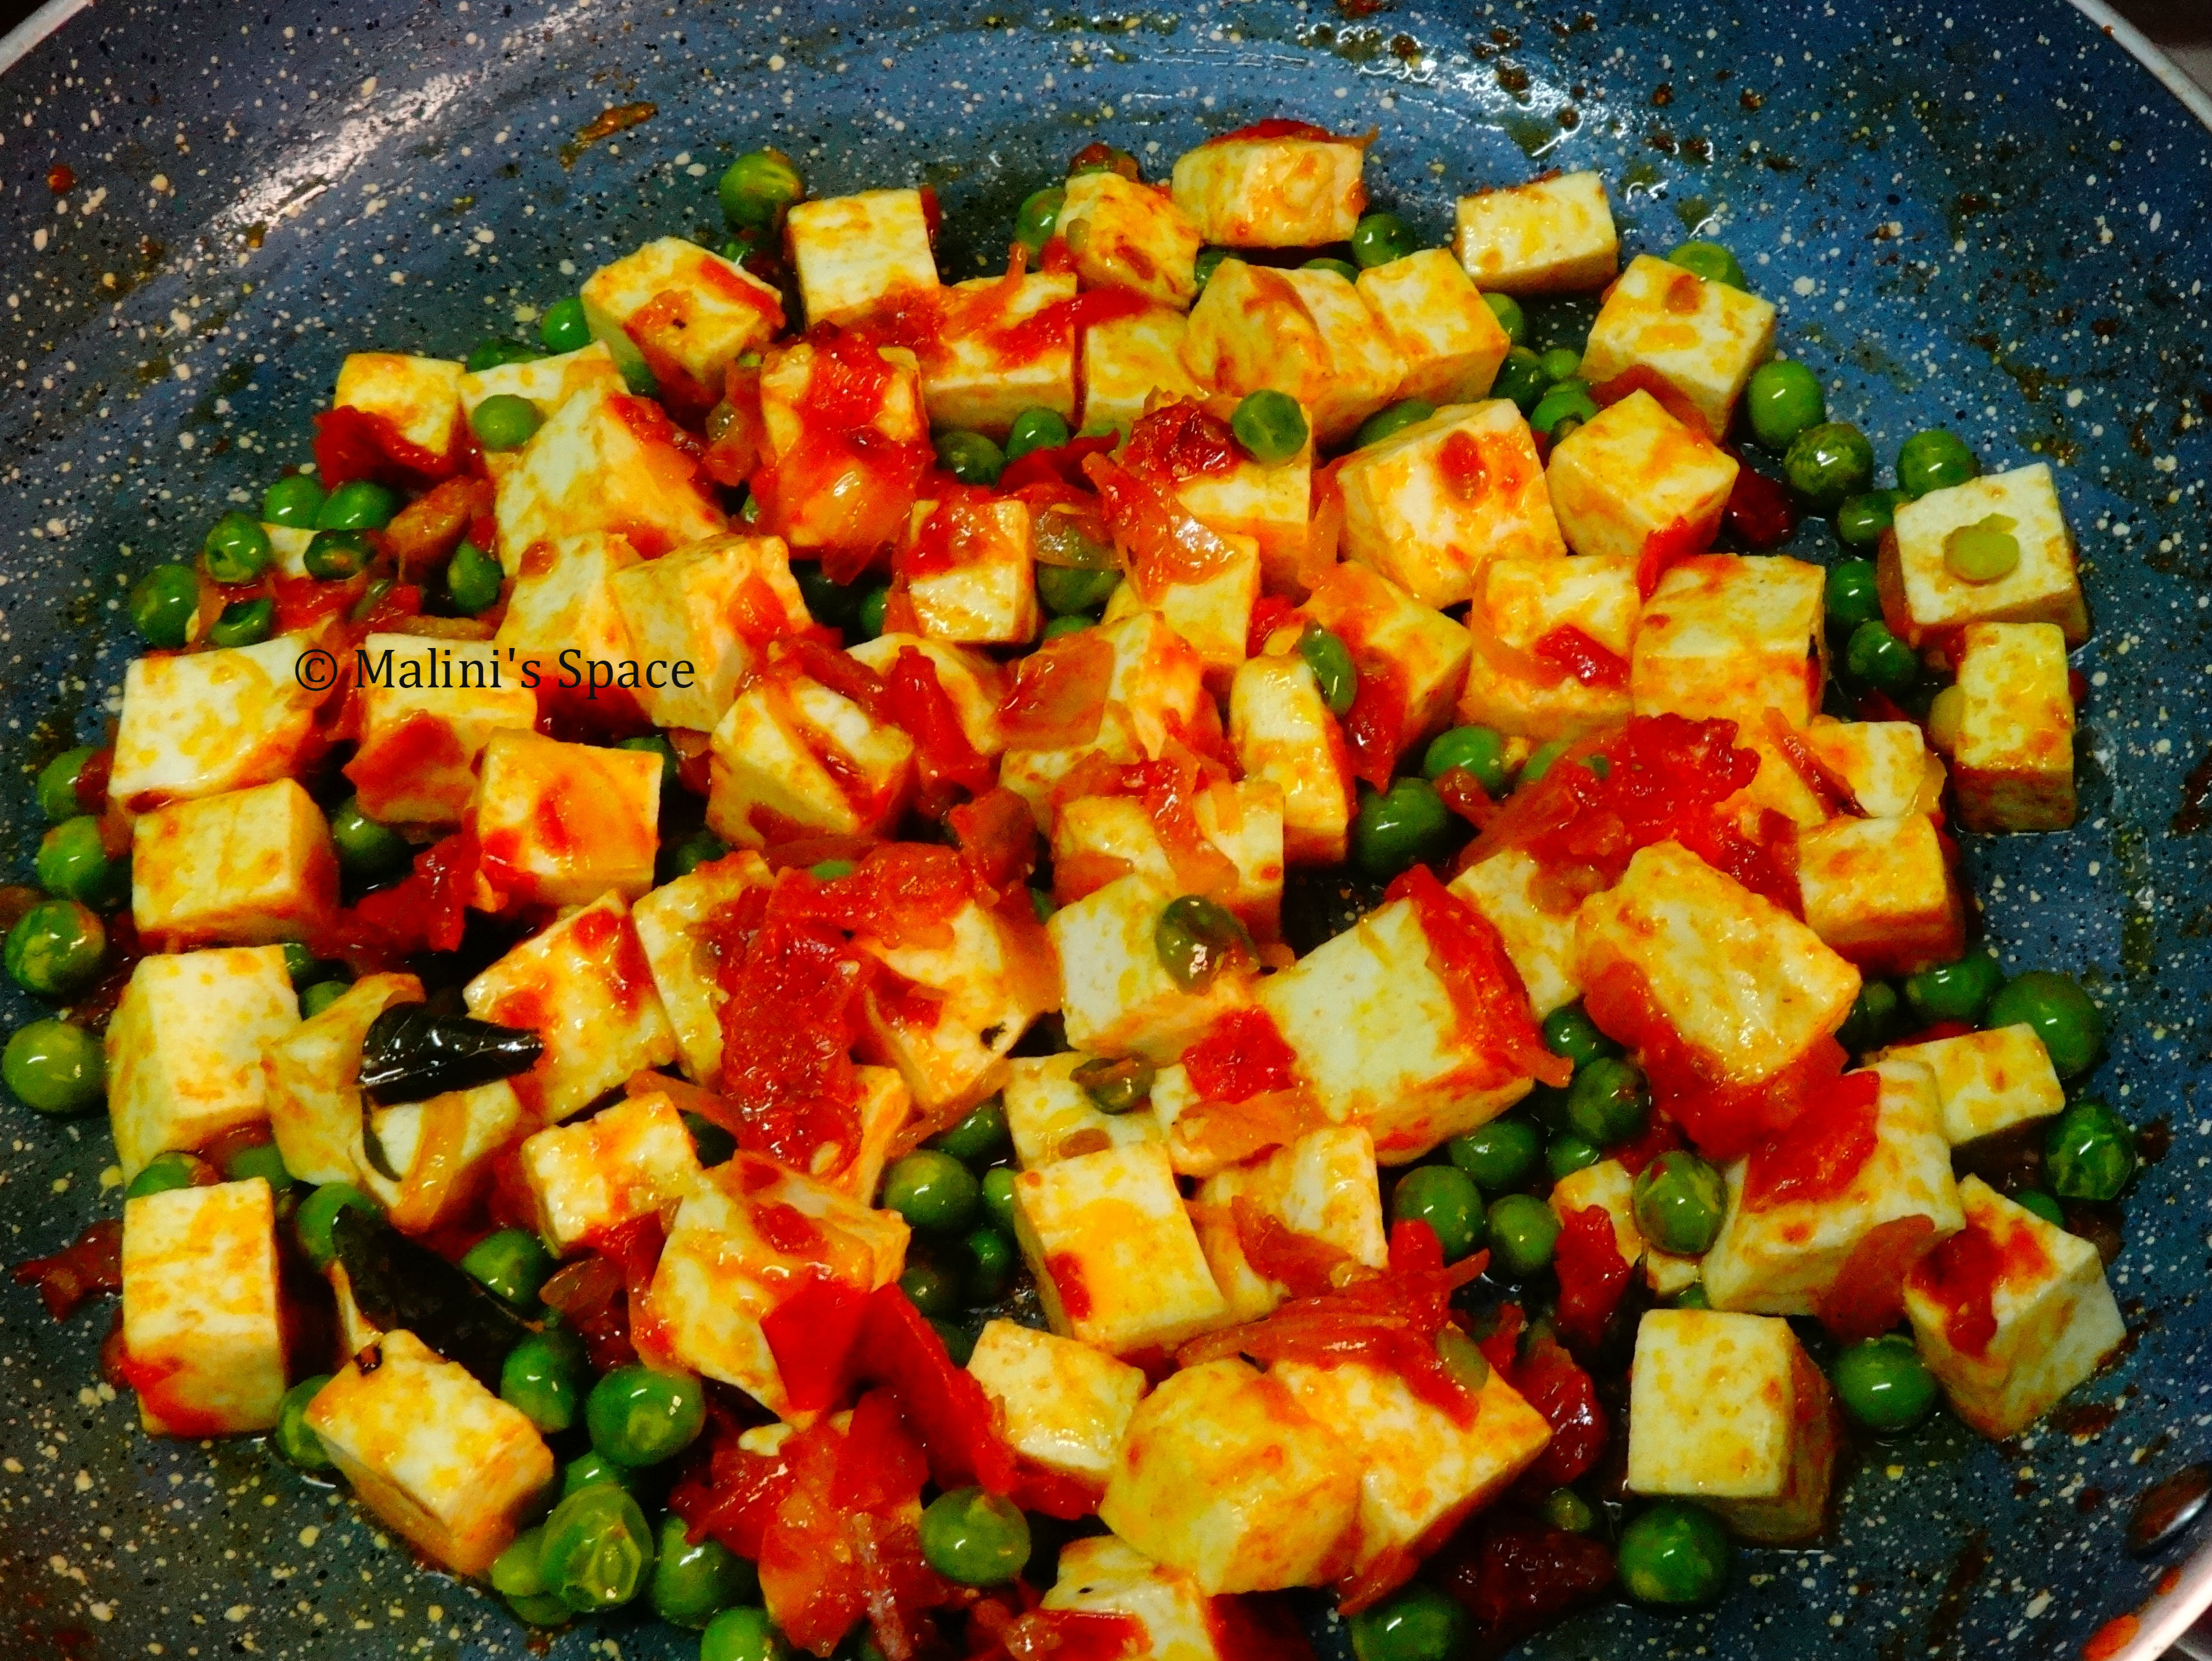 Paneer cubes added